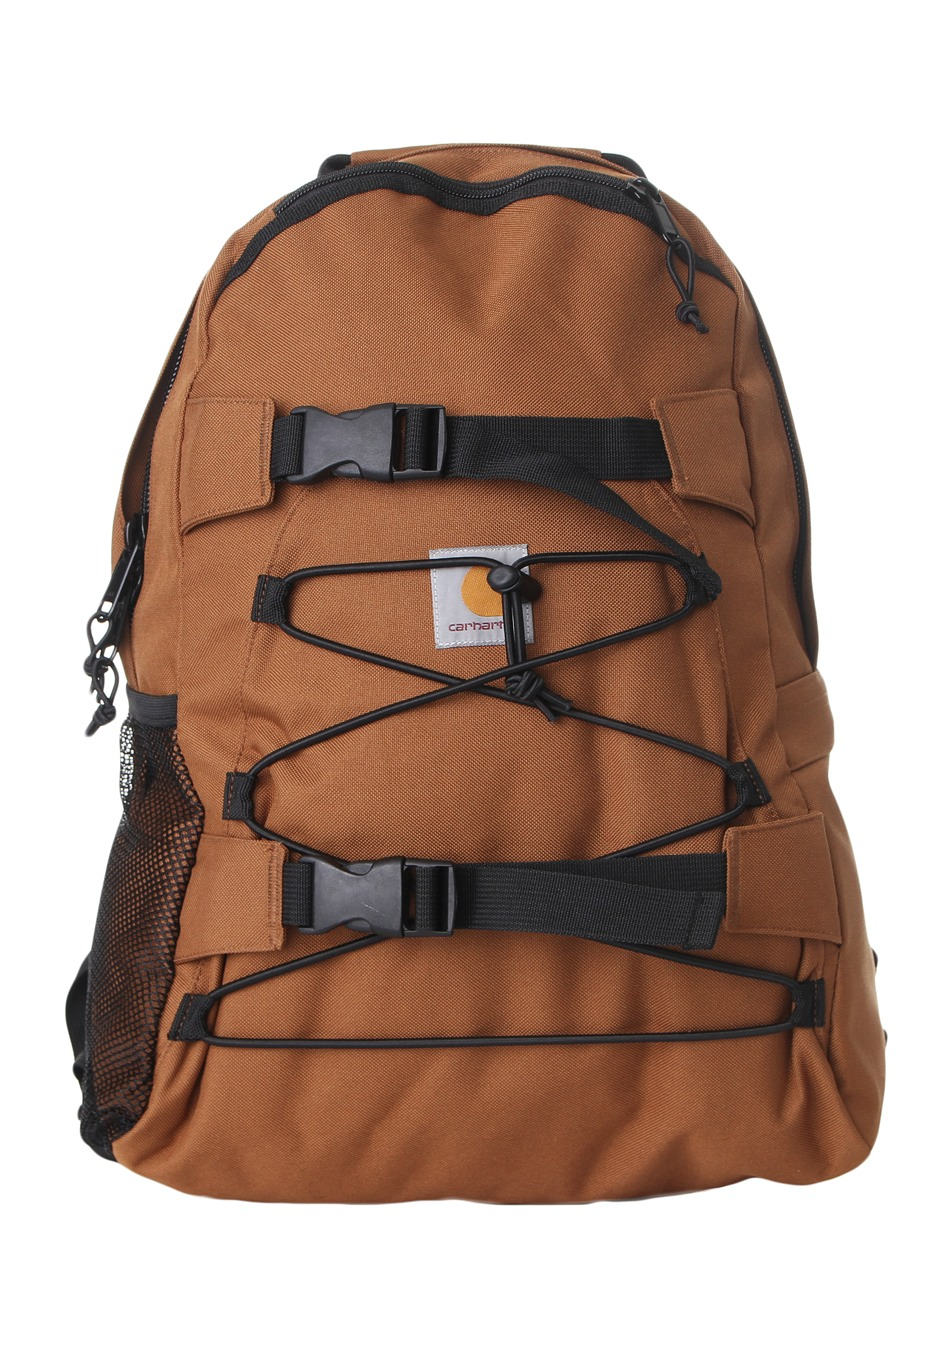 Carhartt WIP - Kickflip Duck Hamilton Brown - Backpack - Streetwear Shop -  Impericon.com Worldwide